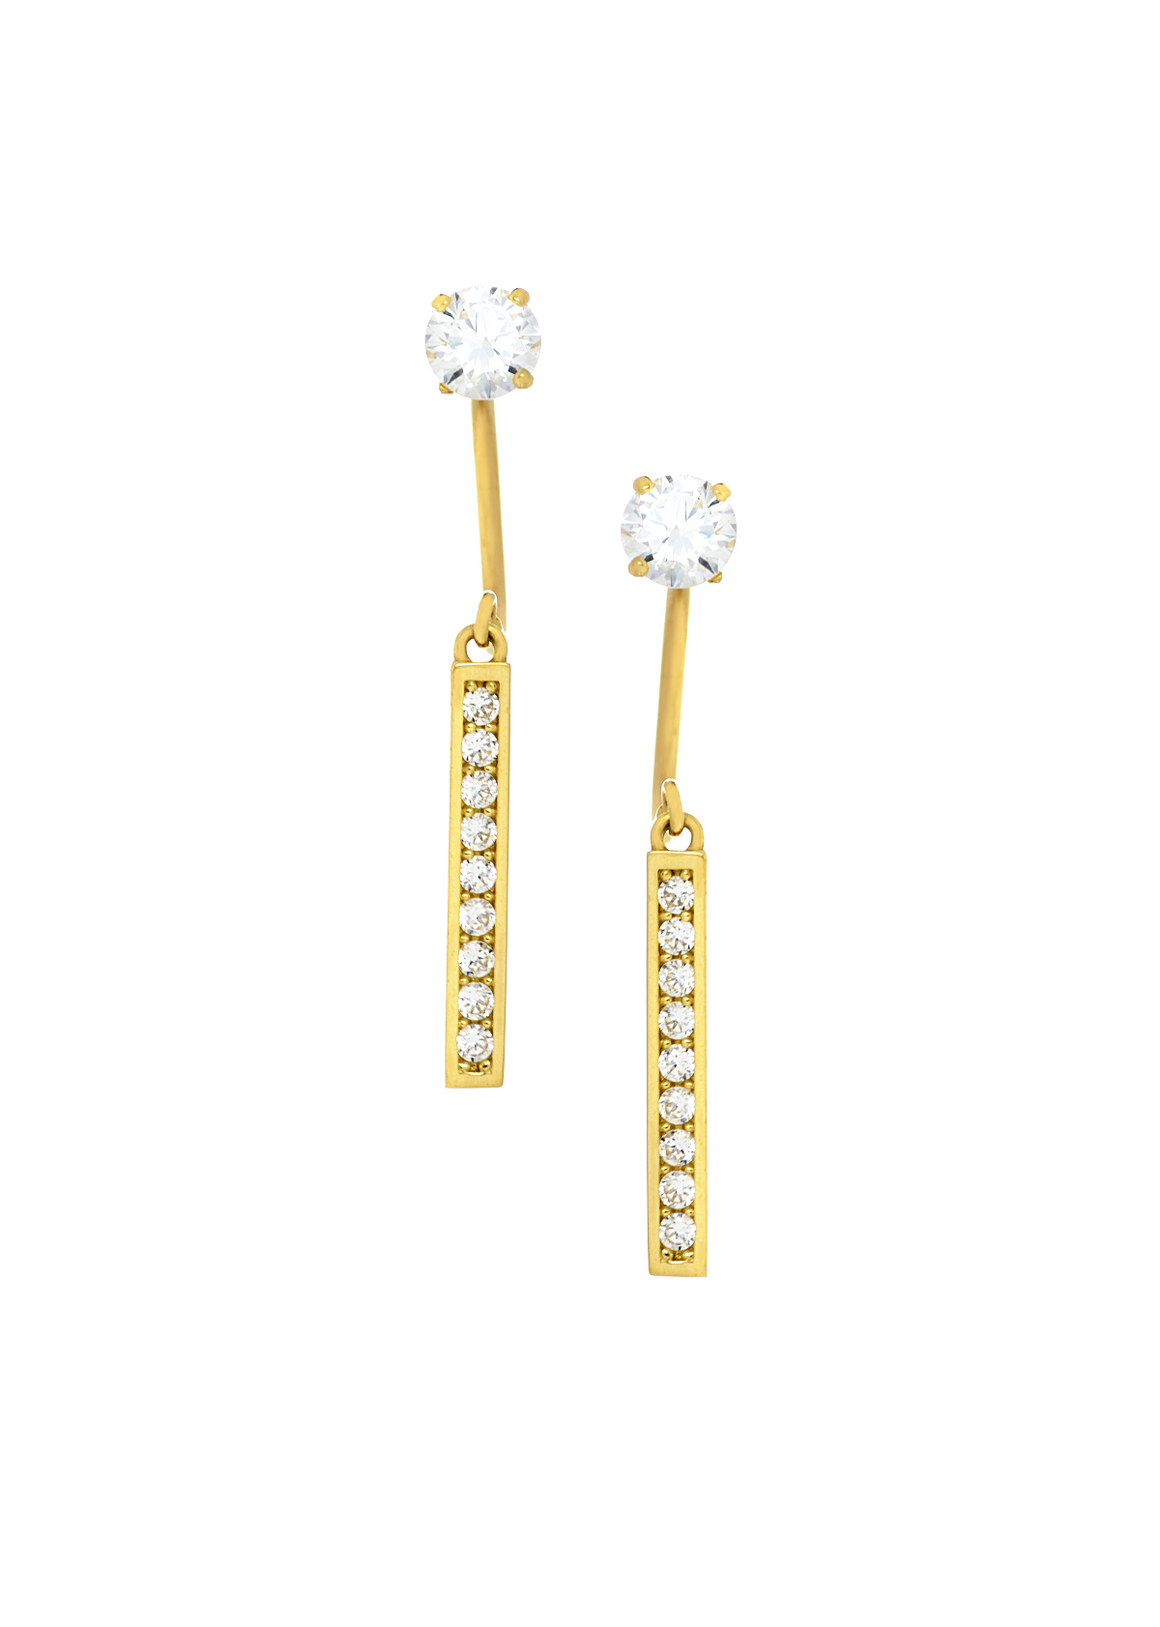 14K Yellow Gold Cubic Zirconia Drop Bar Telephone Earrings - Anny Gabriella NY